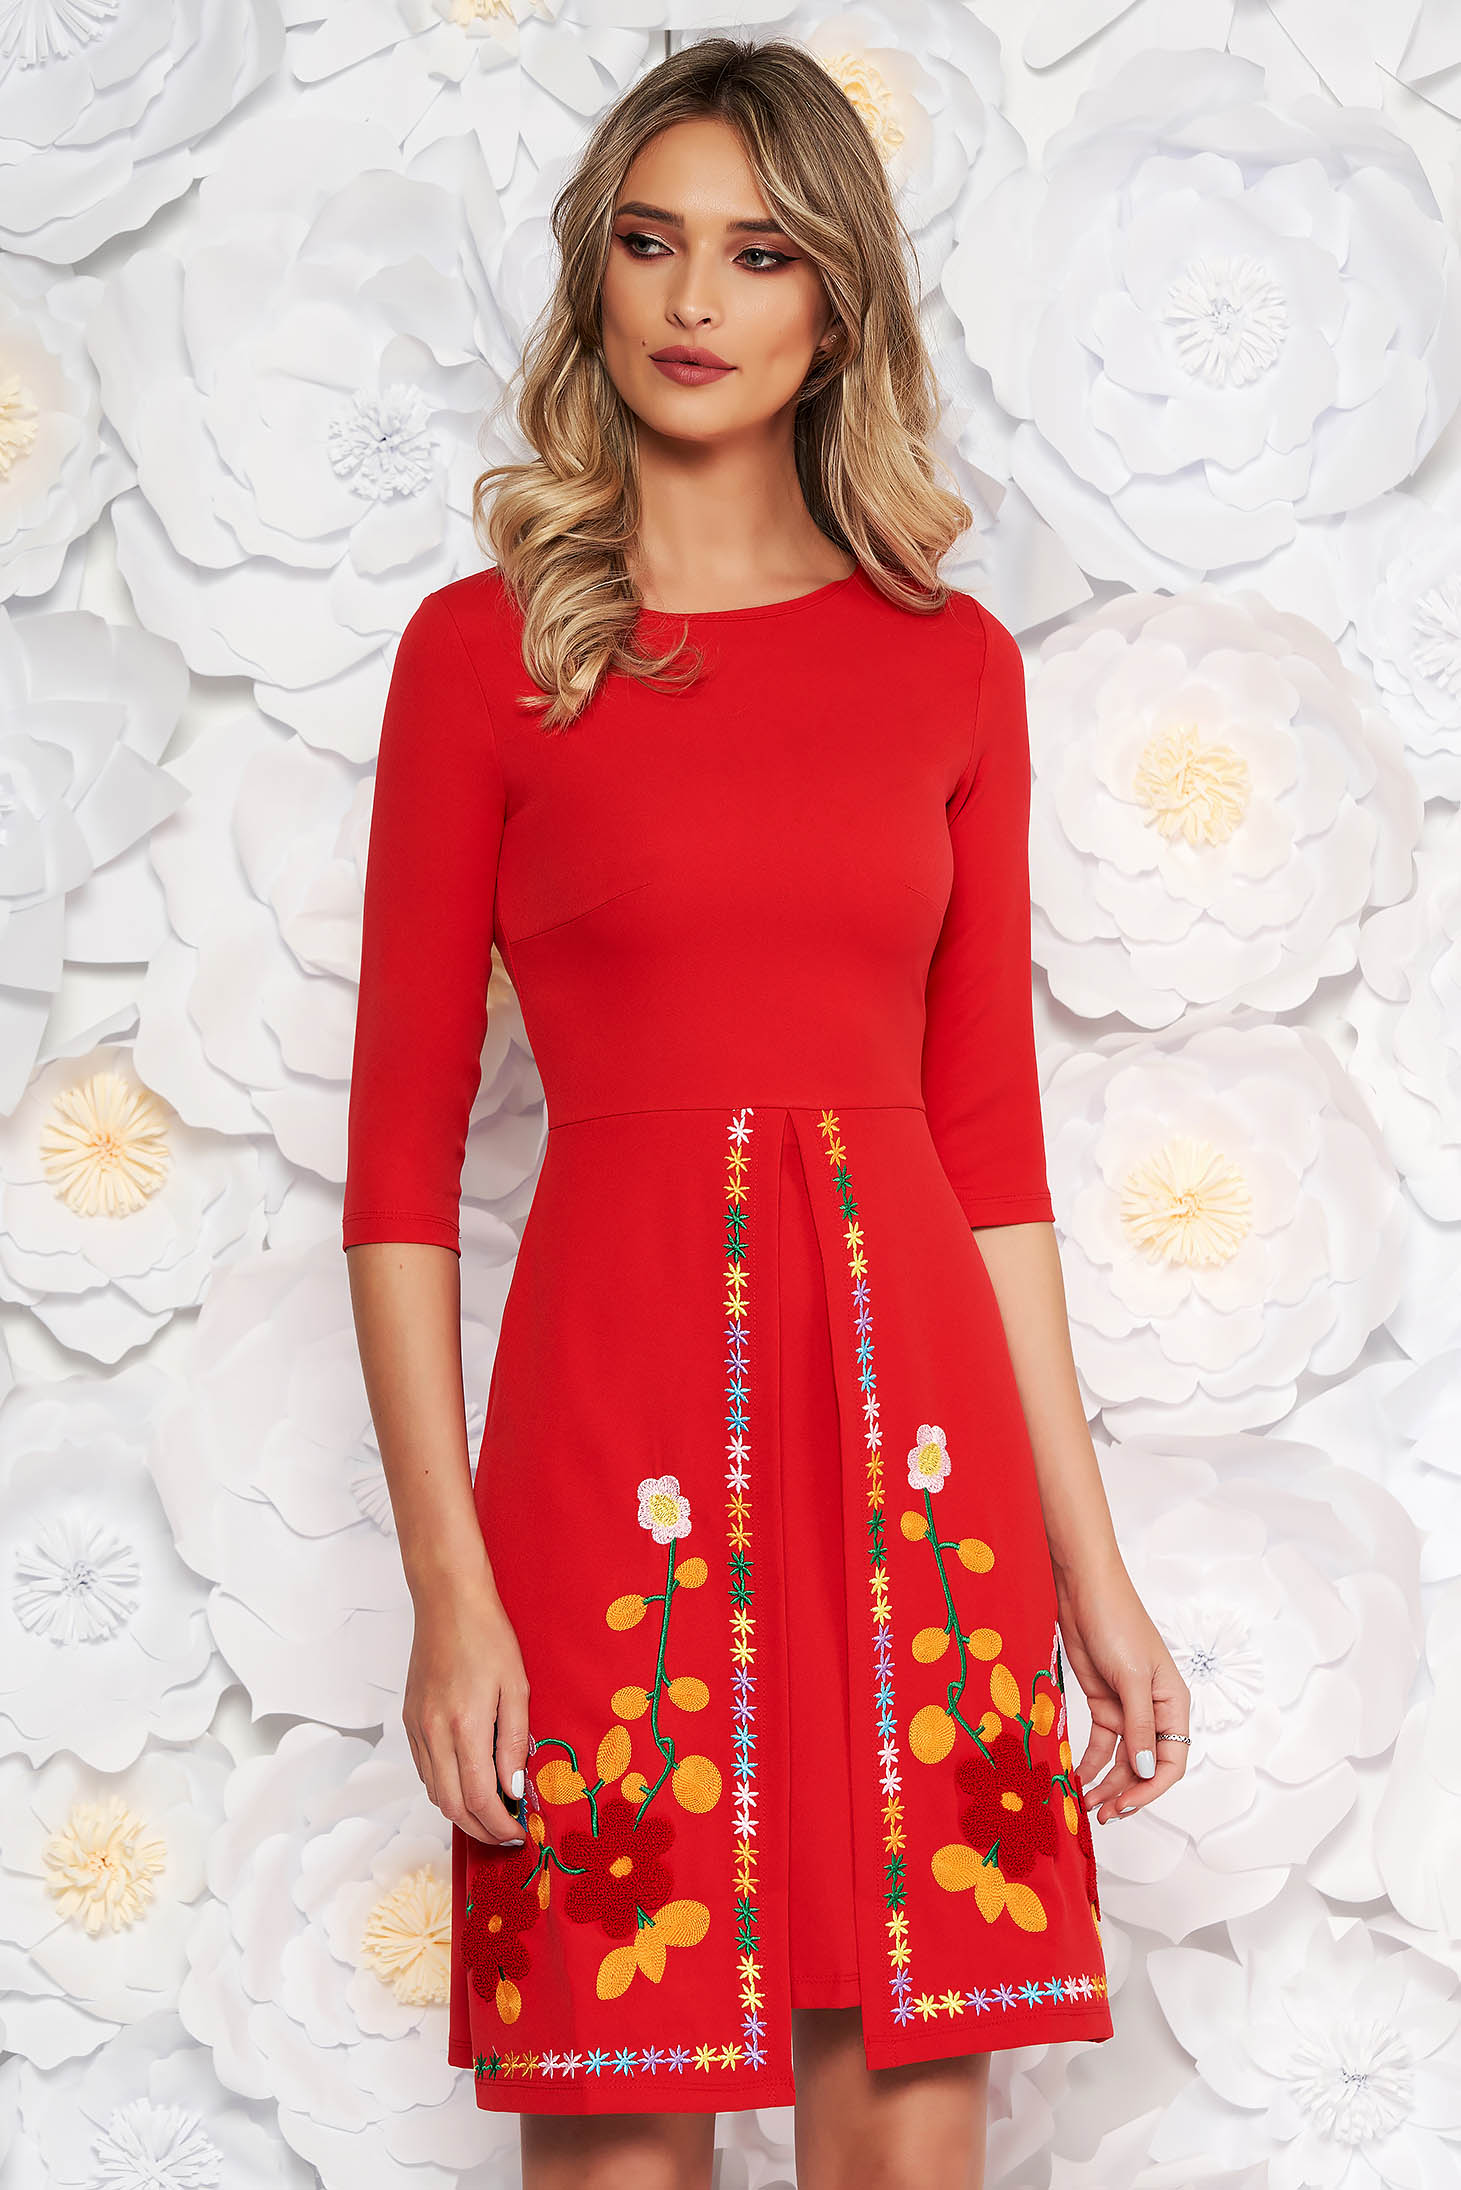 SunShine red daily a-line dress slightly elastic fabric with embroidery details